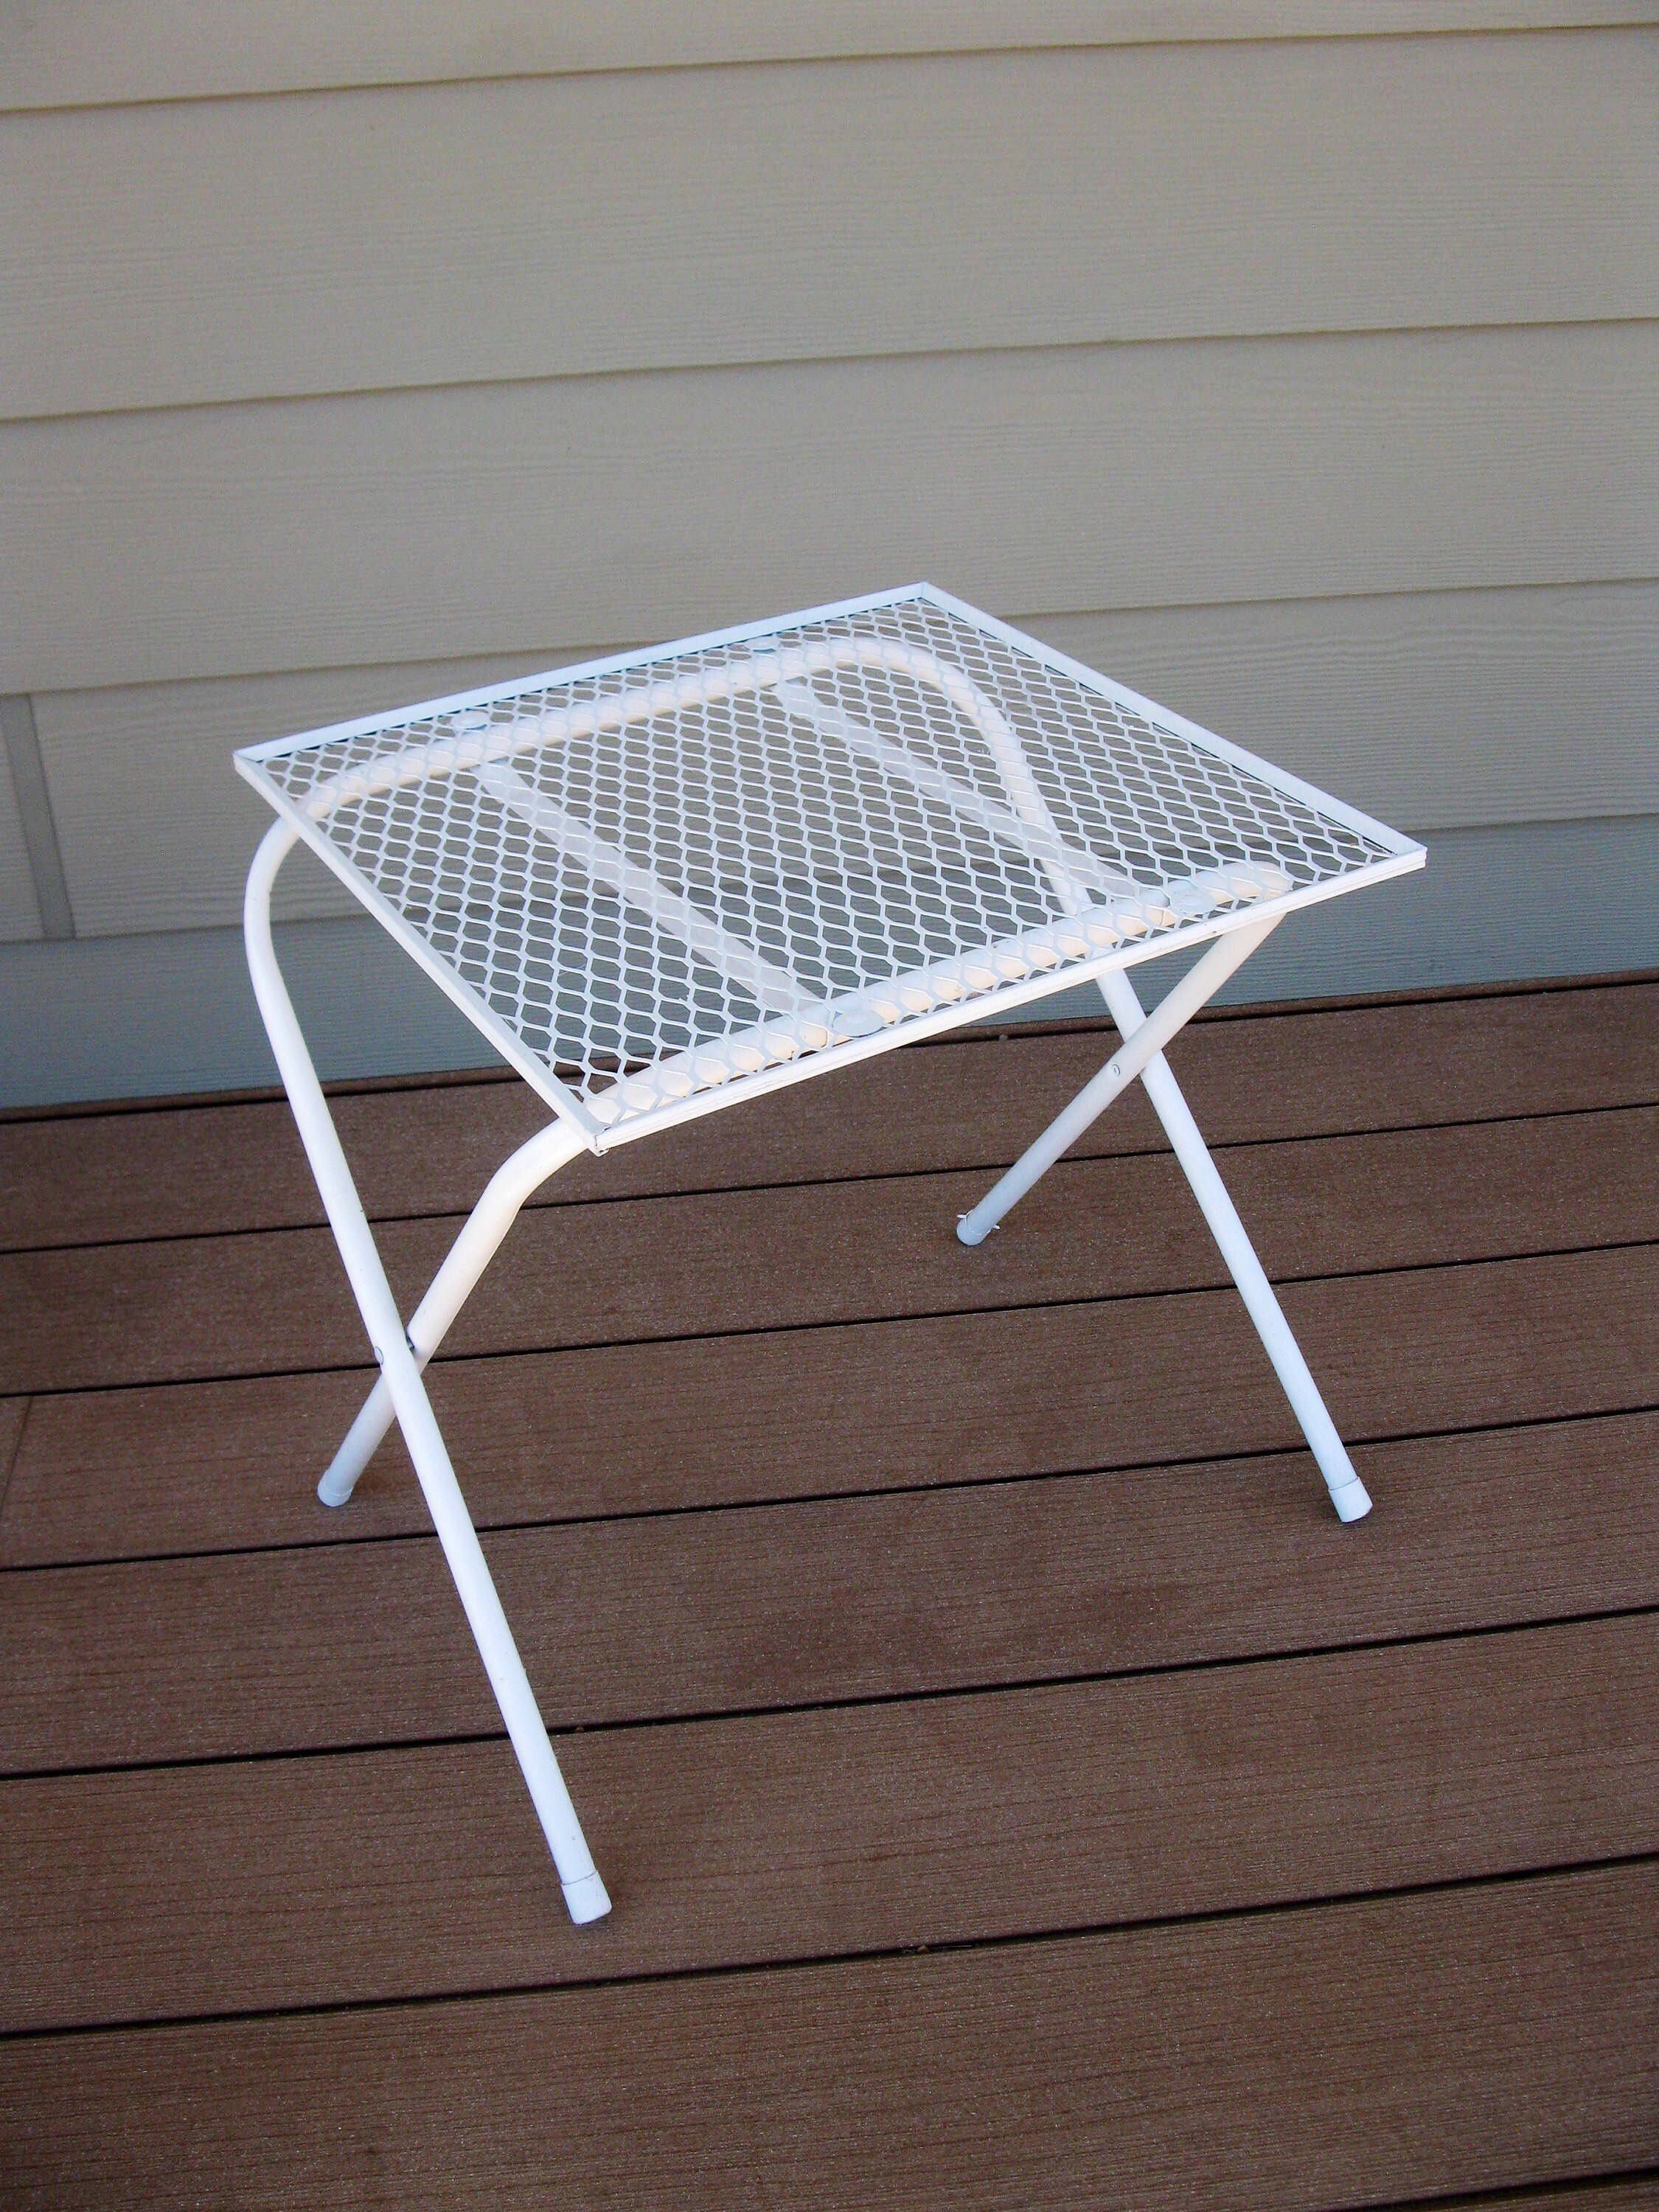 Vintage Metal Mesh Patio Table Folding Mid Century Outdoor Plant Stand Furniture Handi Casual 16 Square By Oakiesclaptrap